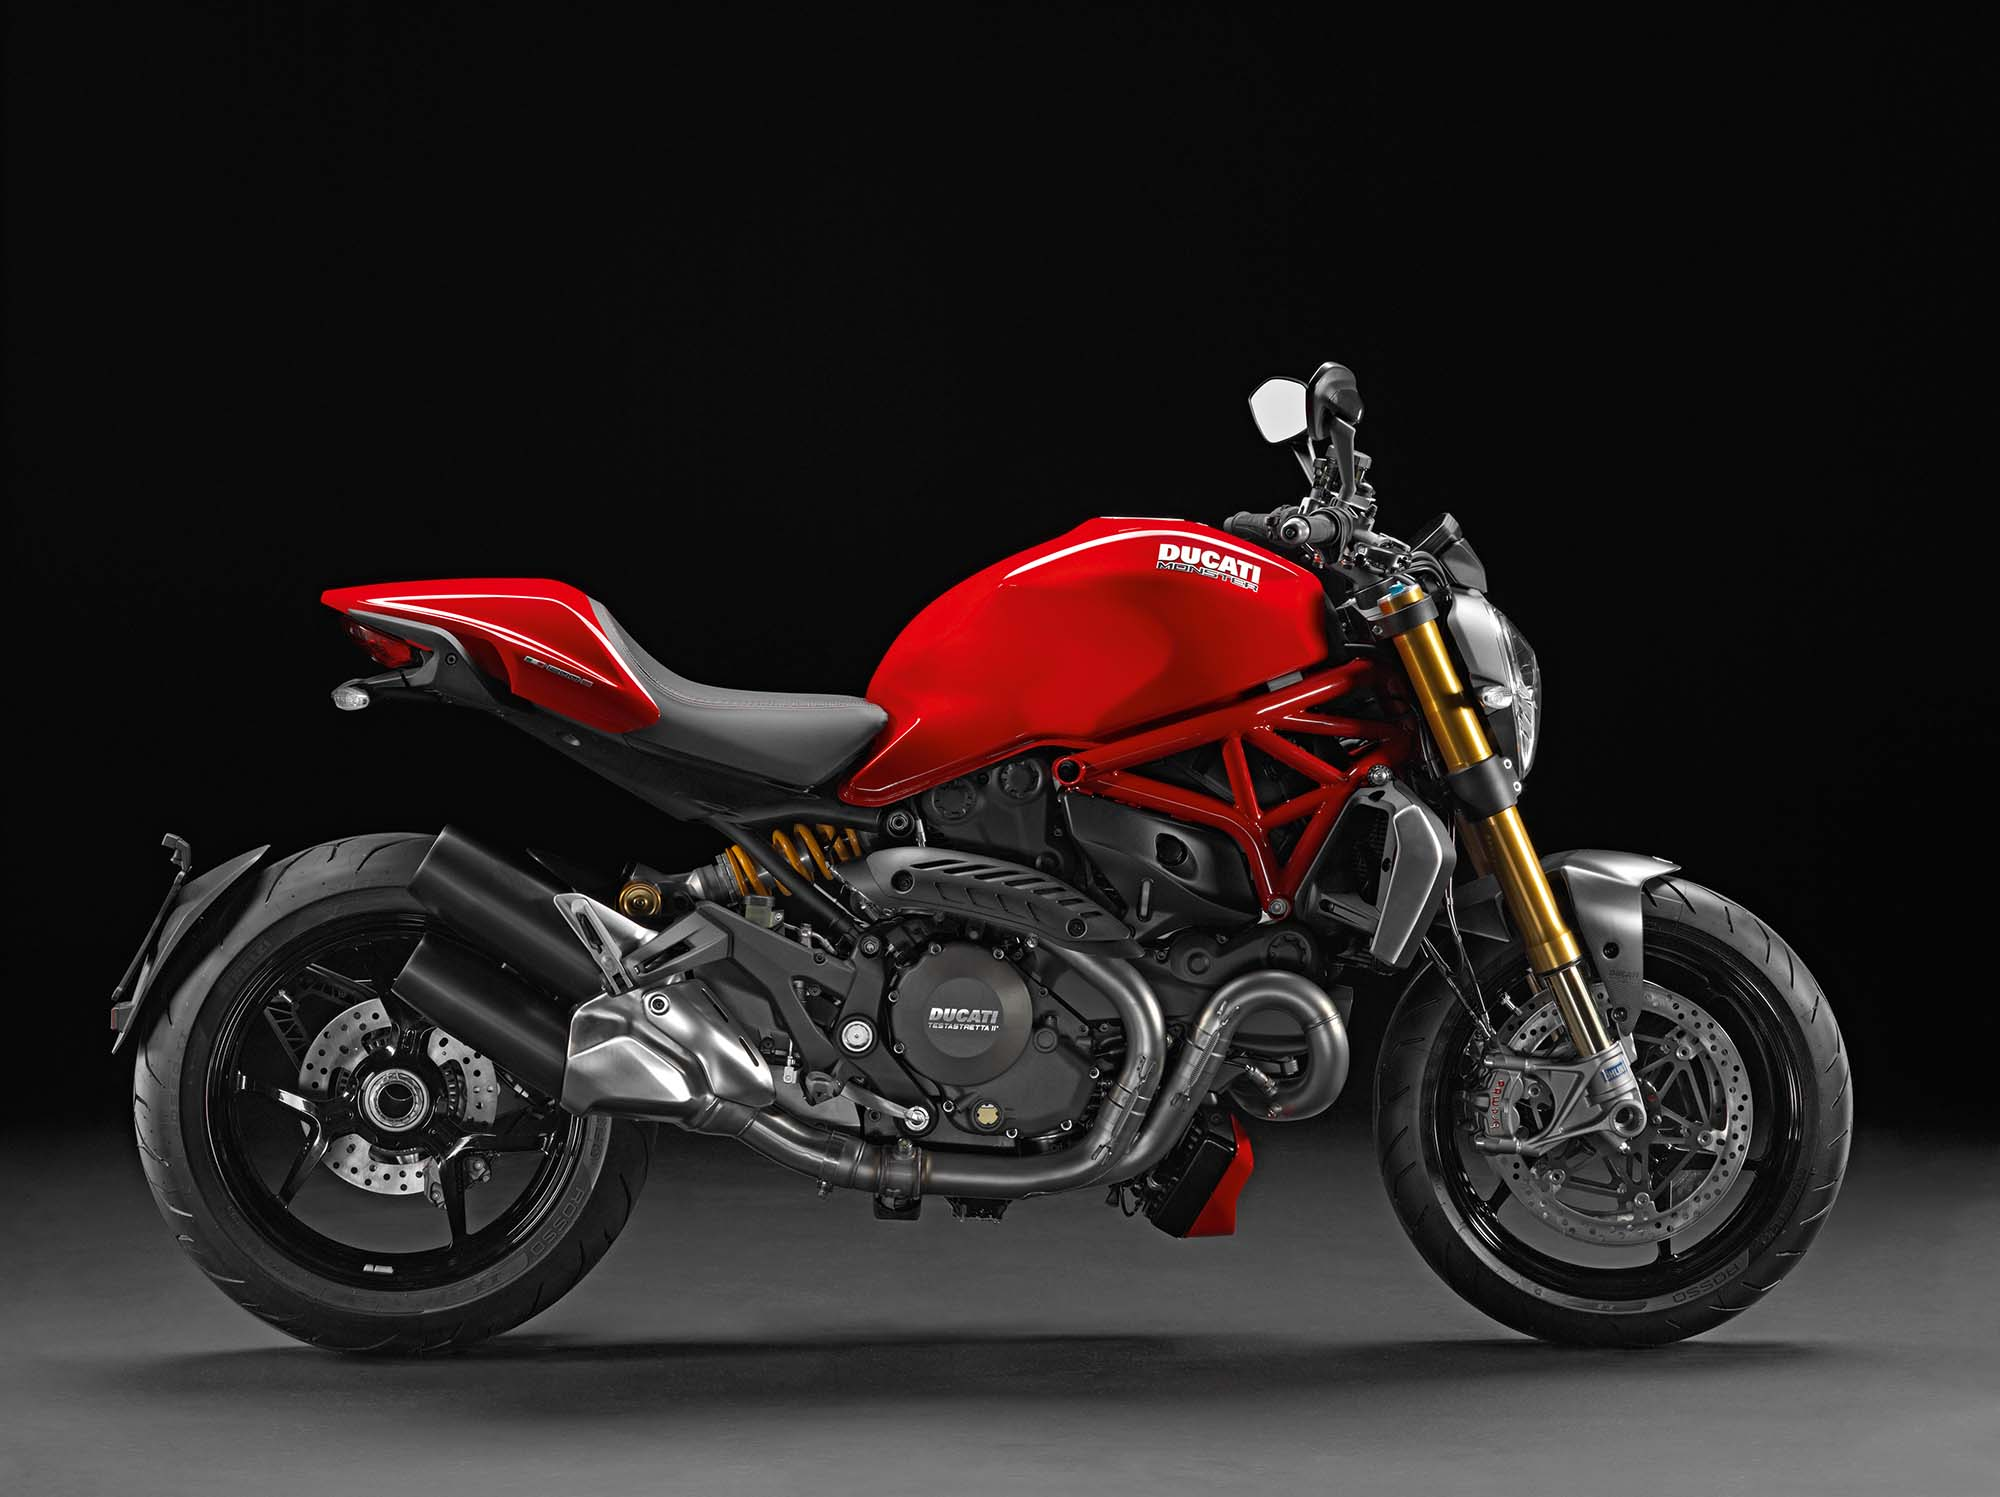 2014 ducati monster 1200 s moar monster asphalt rubber